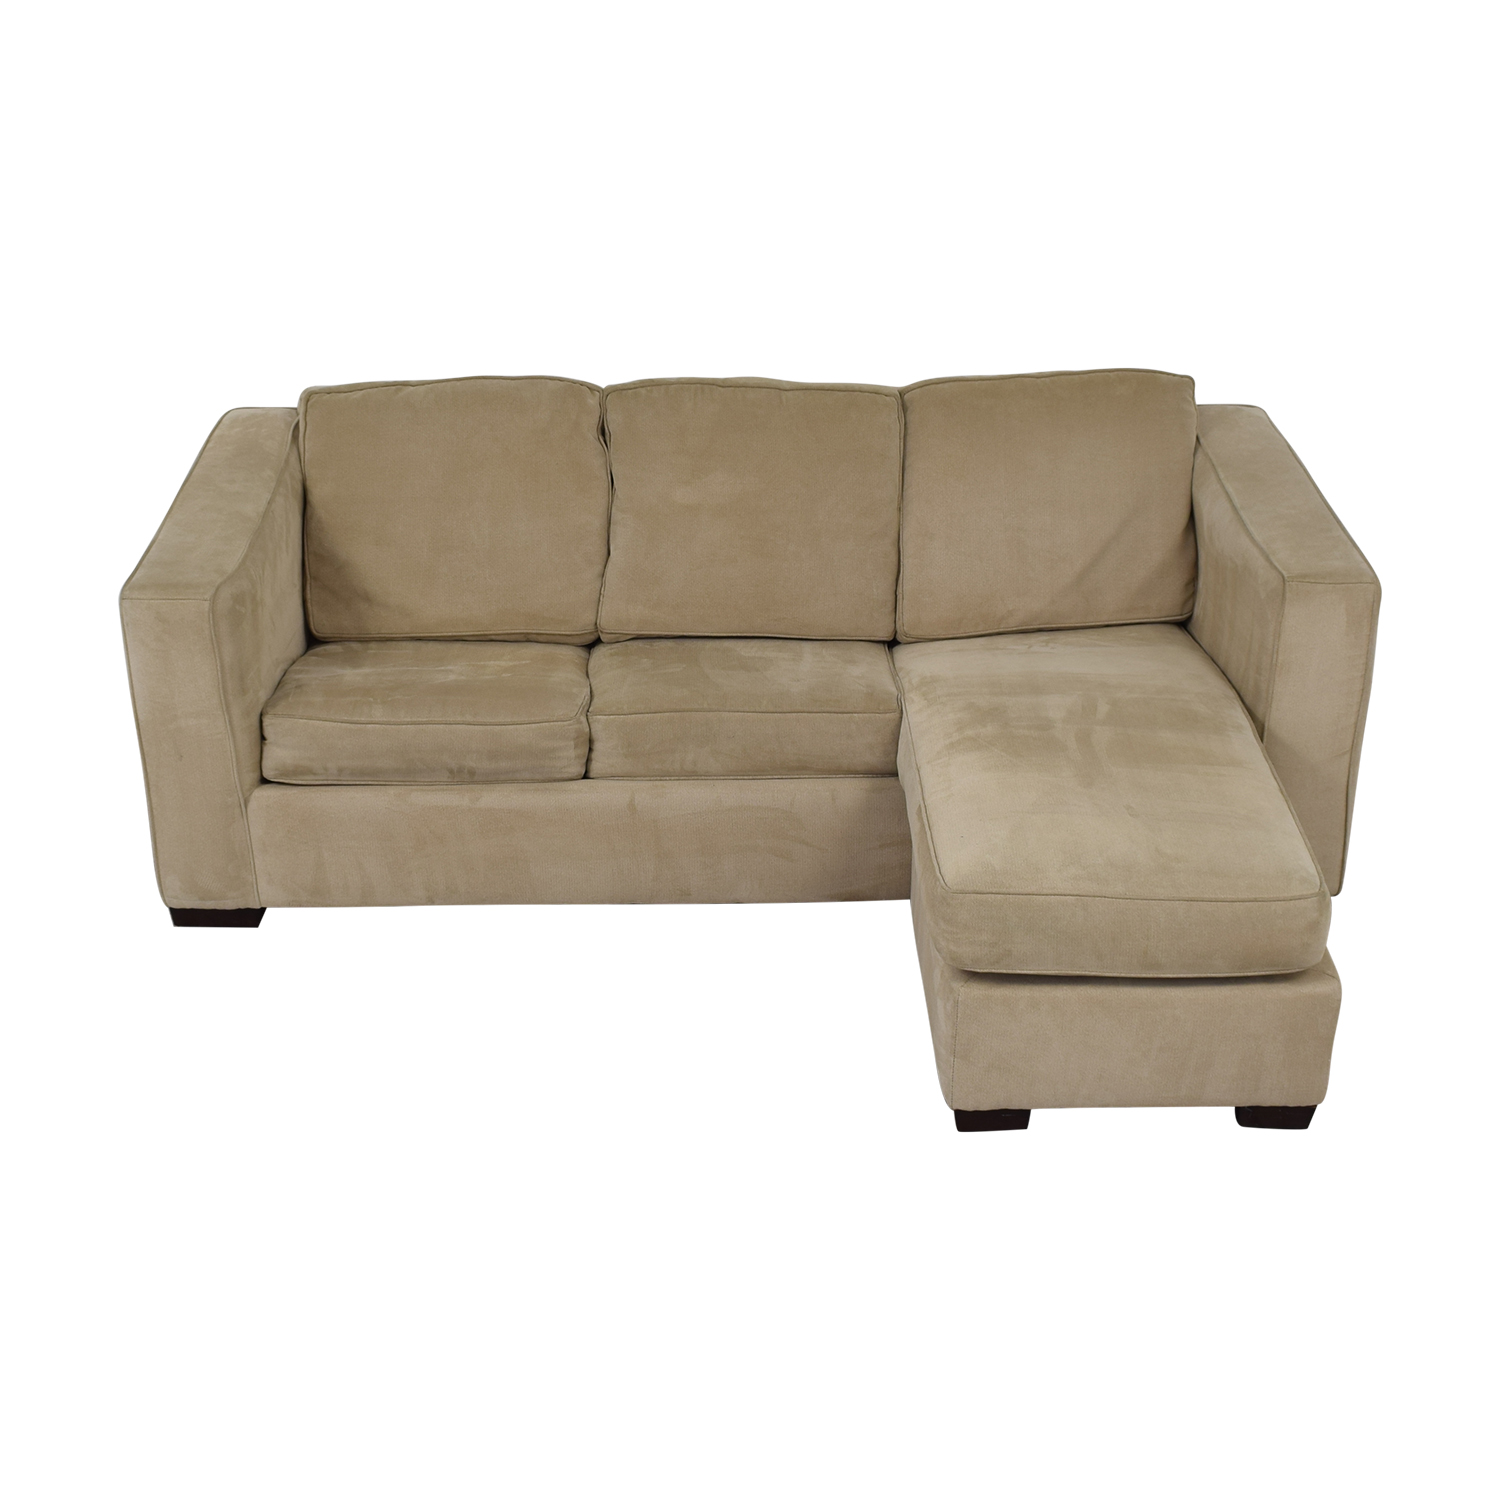 Bauhaus Furniture Bauhaus Furniture Queen Sleeper Sofa Sectional with Chaise coupon